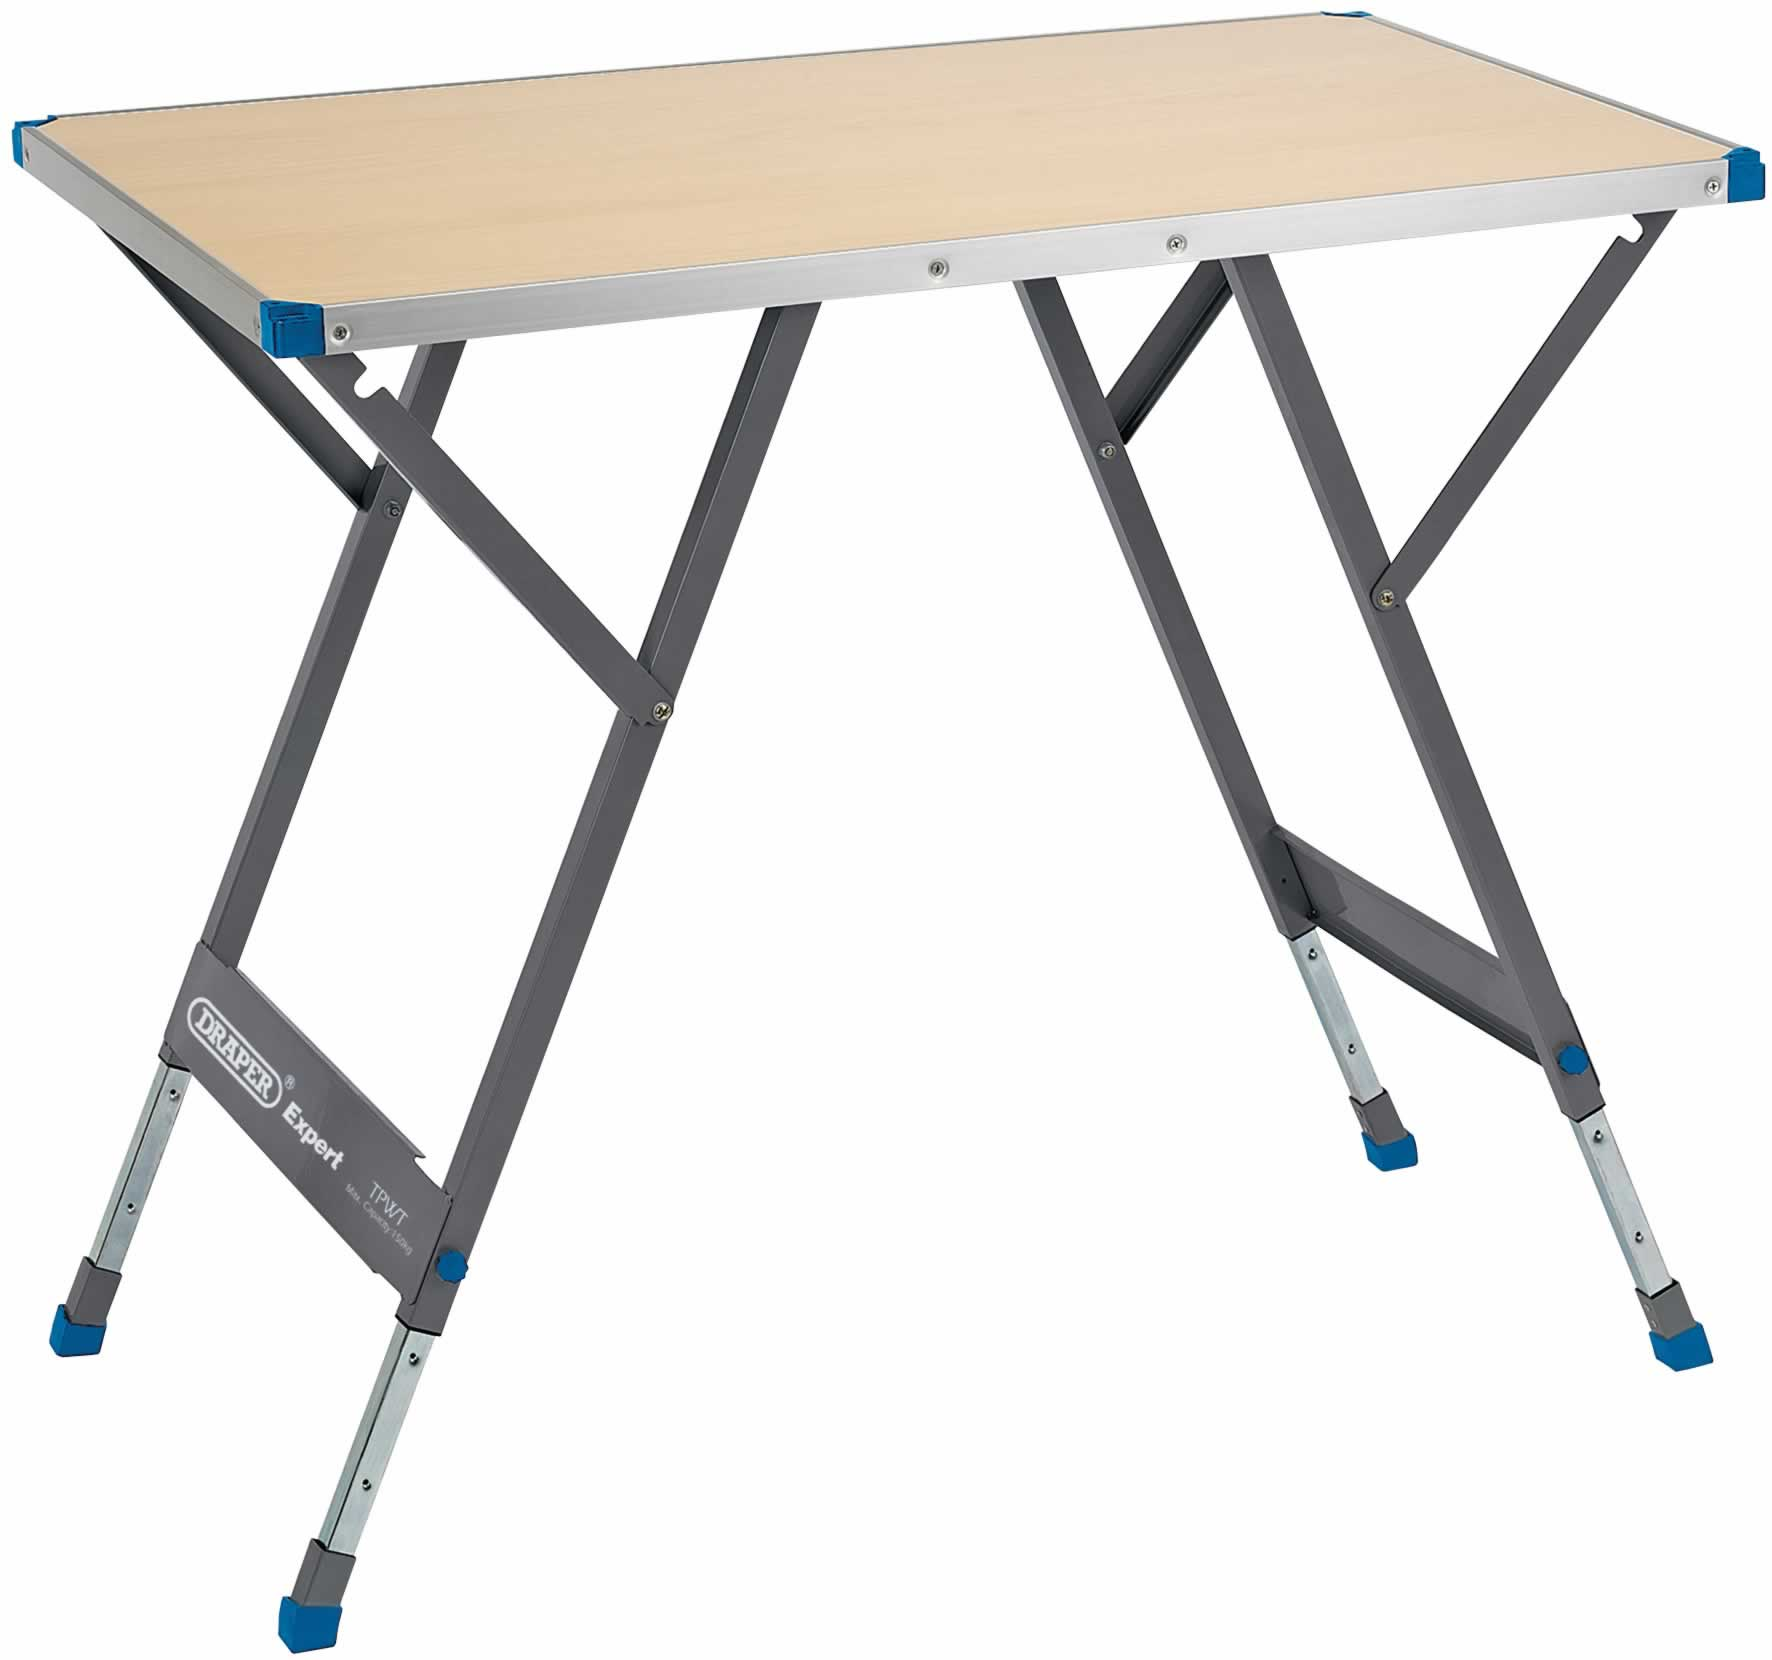 EXPERT PROFESSIONAL WORK TABLE 1000 x 600MM